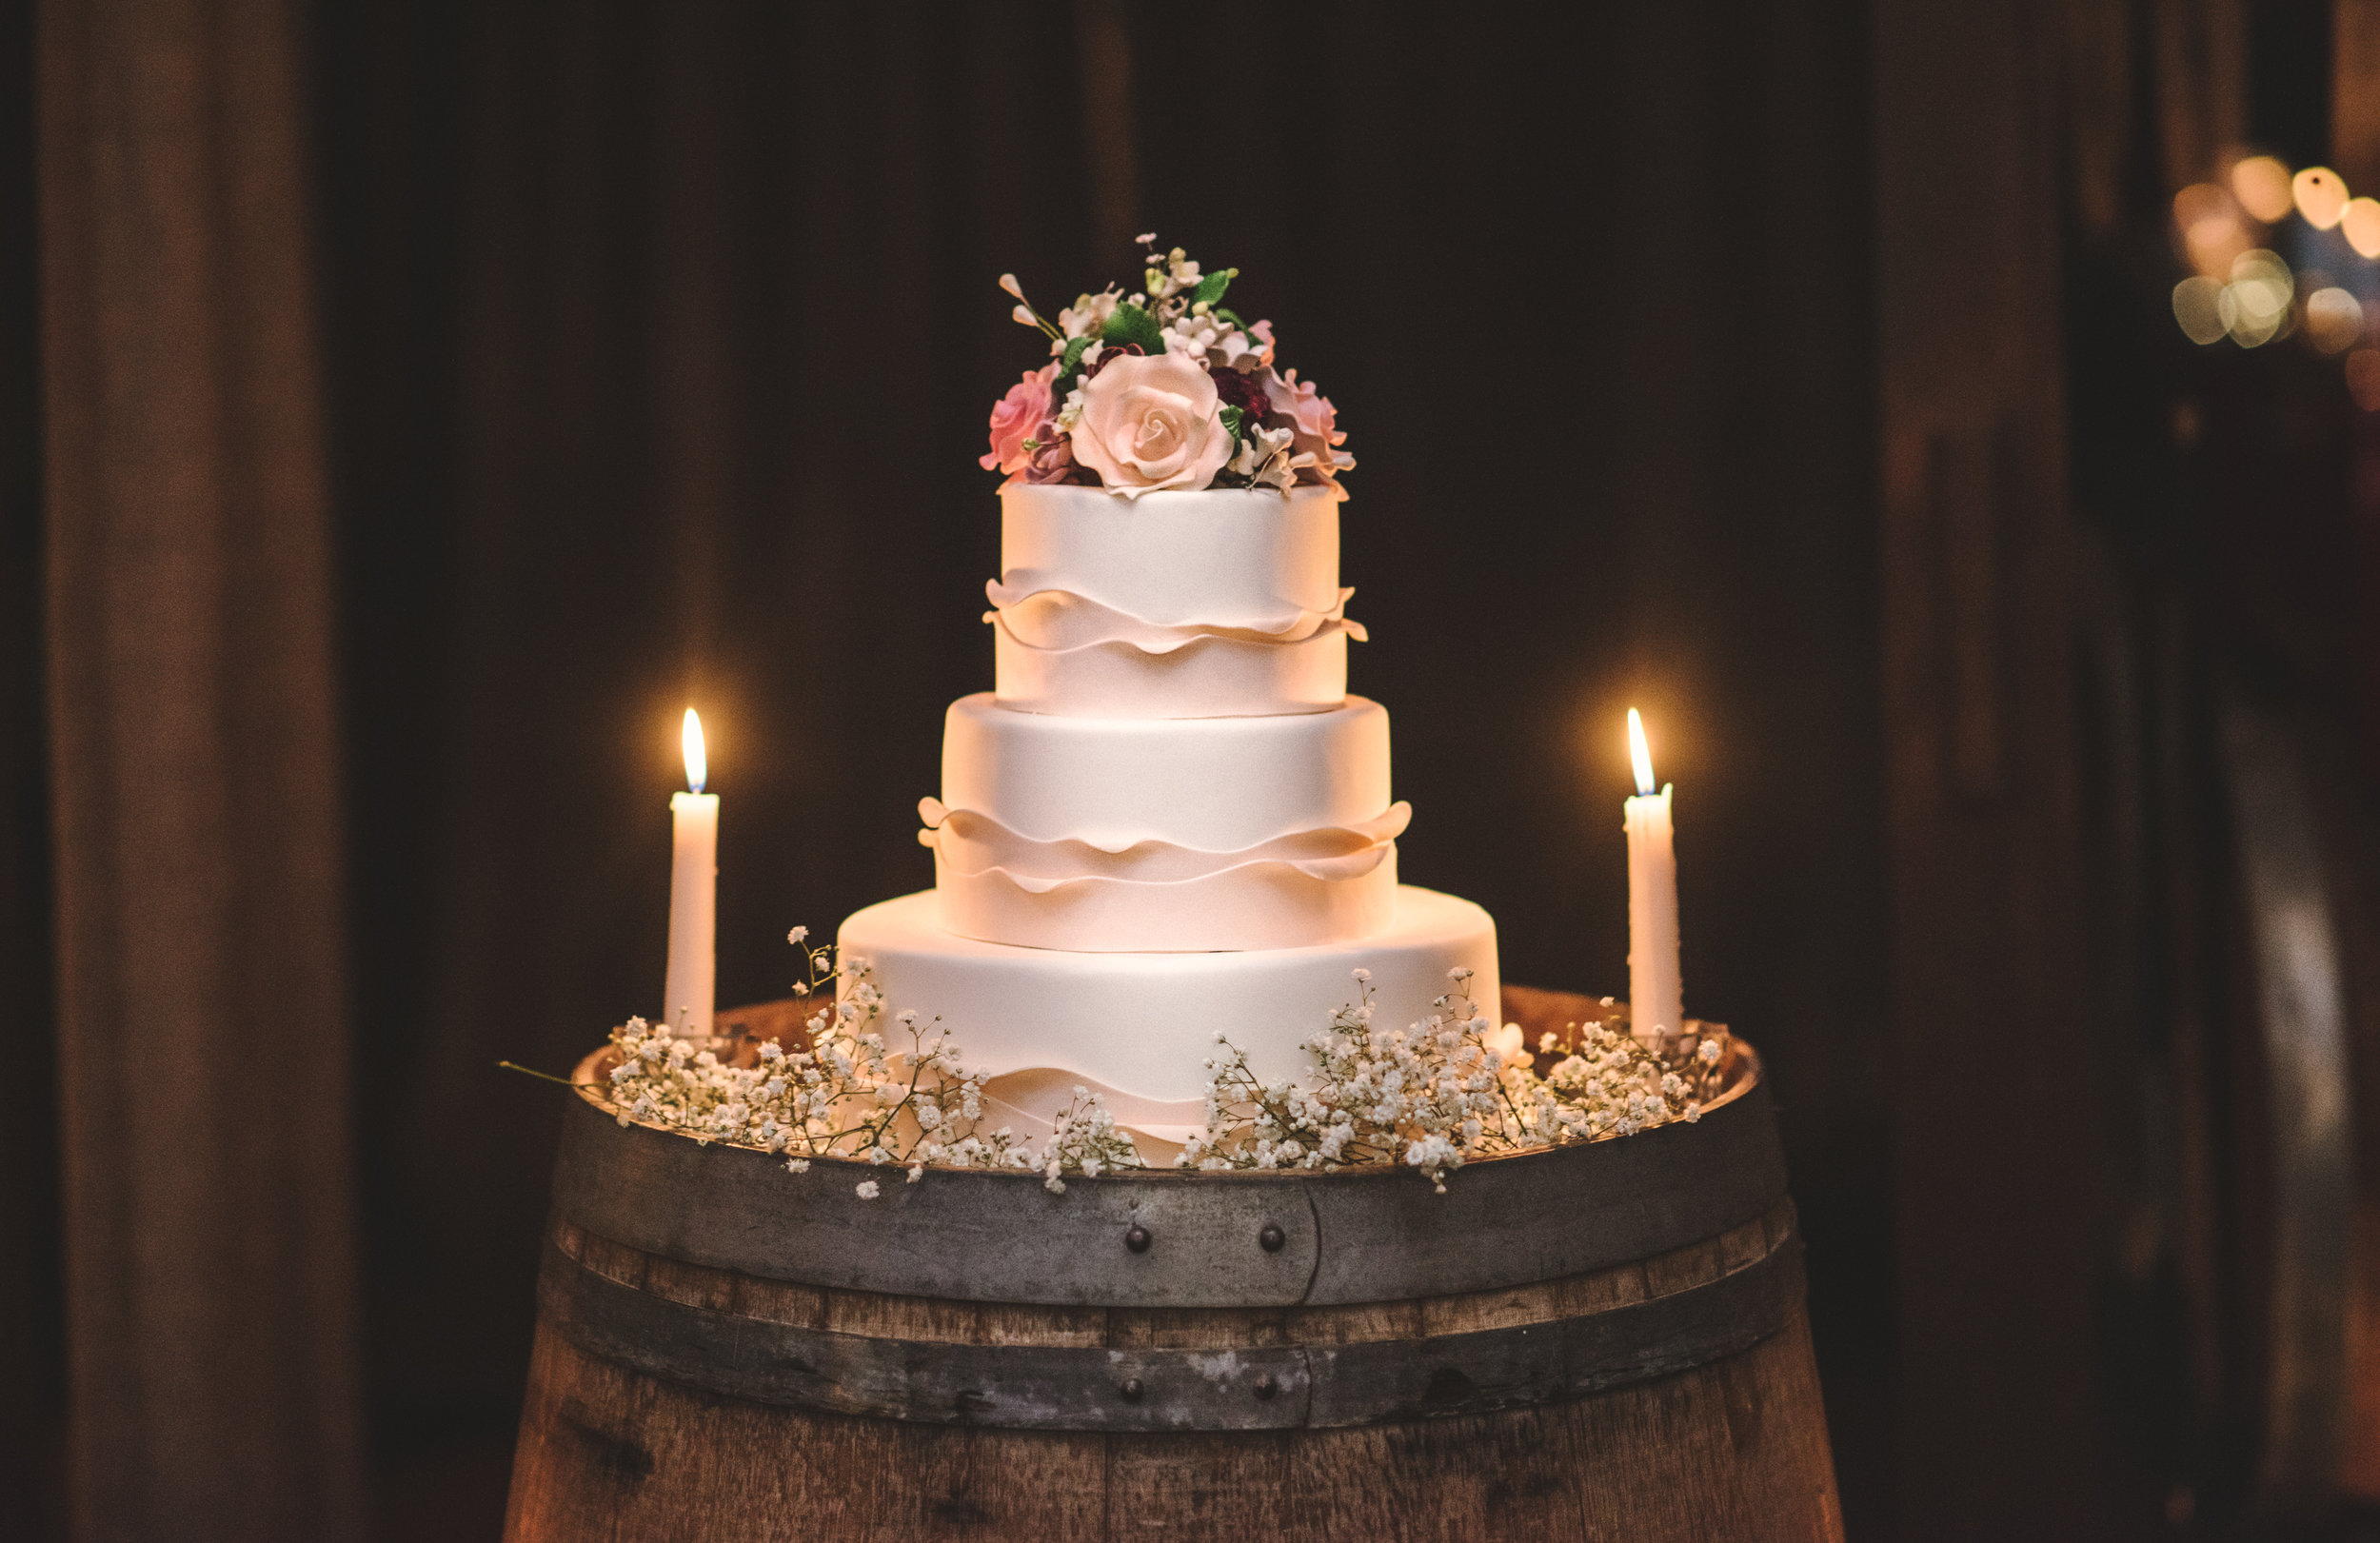 BROOKLYN WINERY WEDDING - TWOTWENTY by CHI-CHI AGBIM-410.jpg